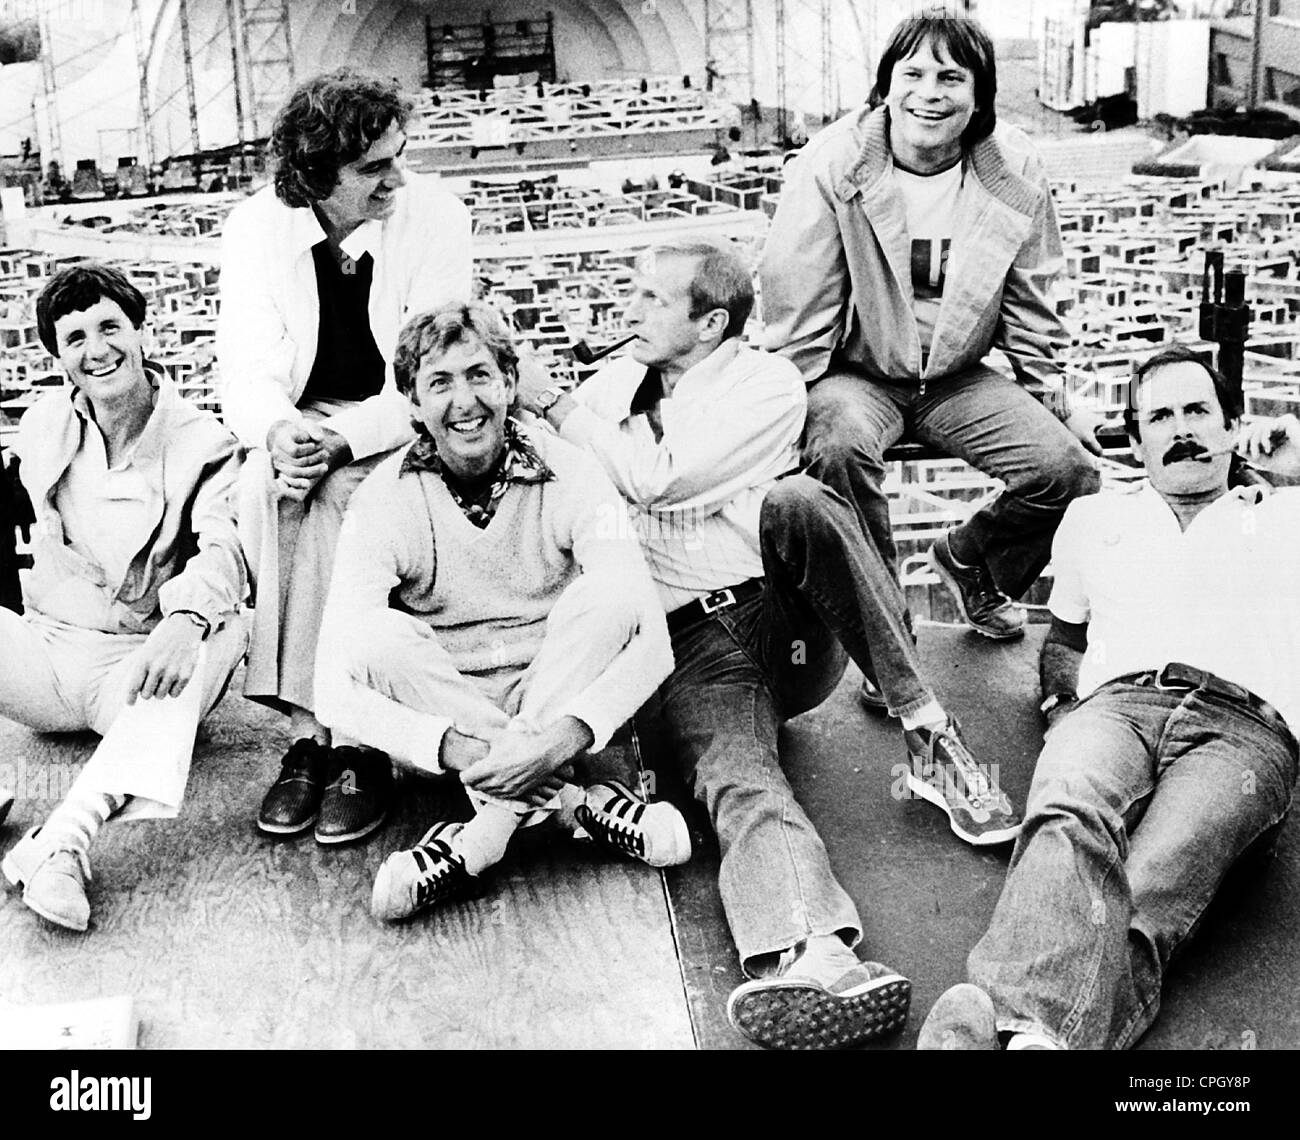 Monty Python The Royal Philharmonic Orchestra Goes To The Bathroom: Eric Idle Stock Photos & Eric Idle Stock Images